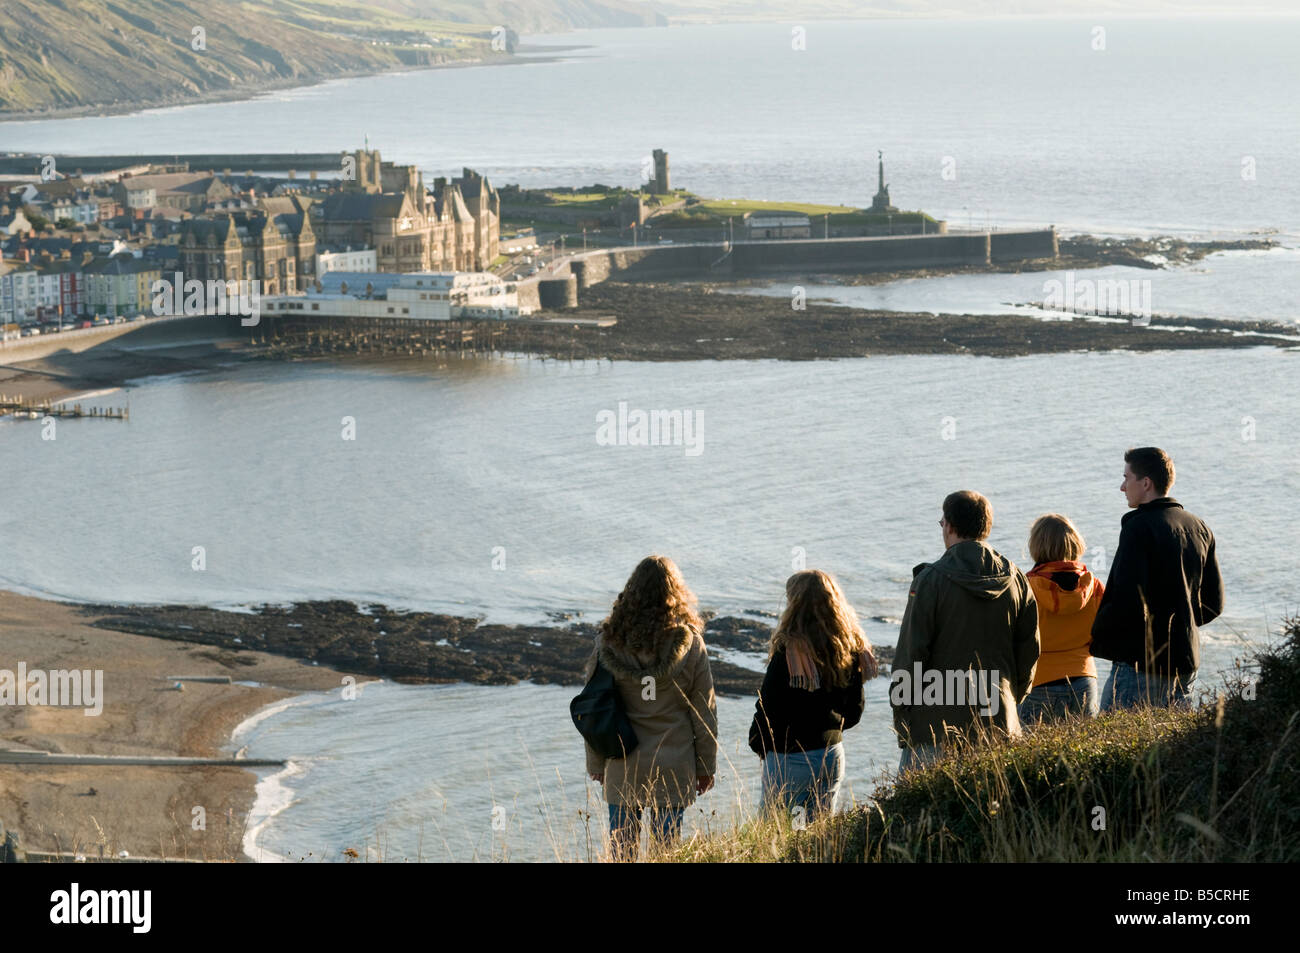 group of 5 University students on Constitution Hill overlooking the seaside resort town of Aberystwyth Wales UK - Stock Image